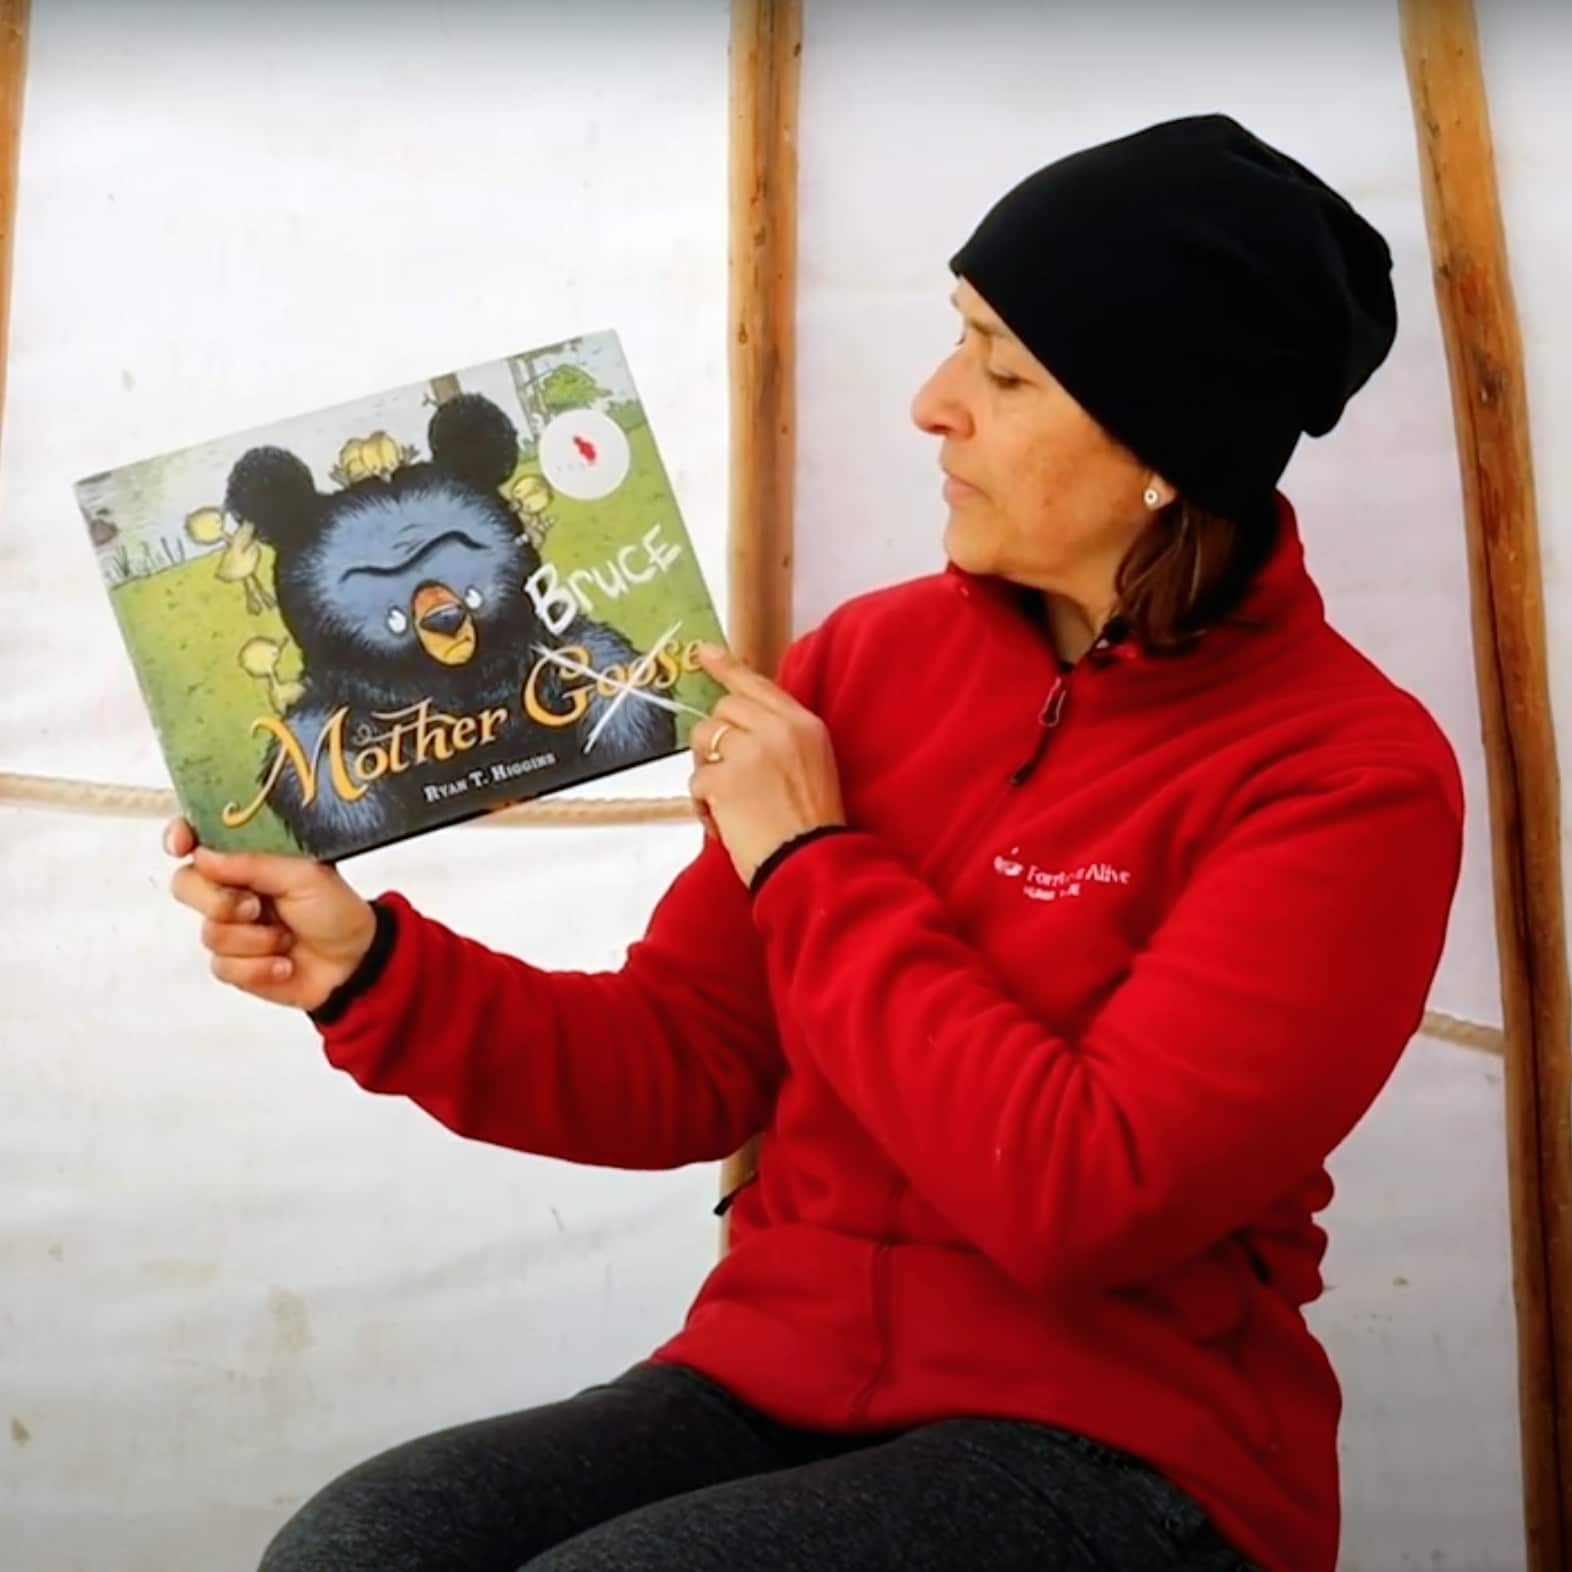 A Forest School Facilitator holds up a children's book.